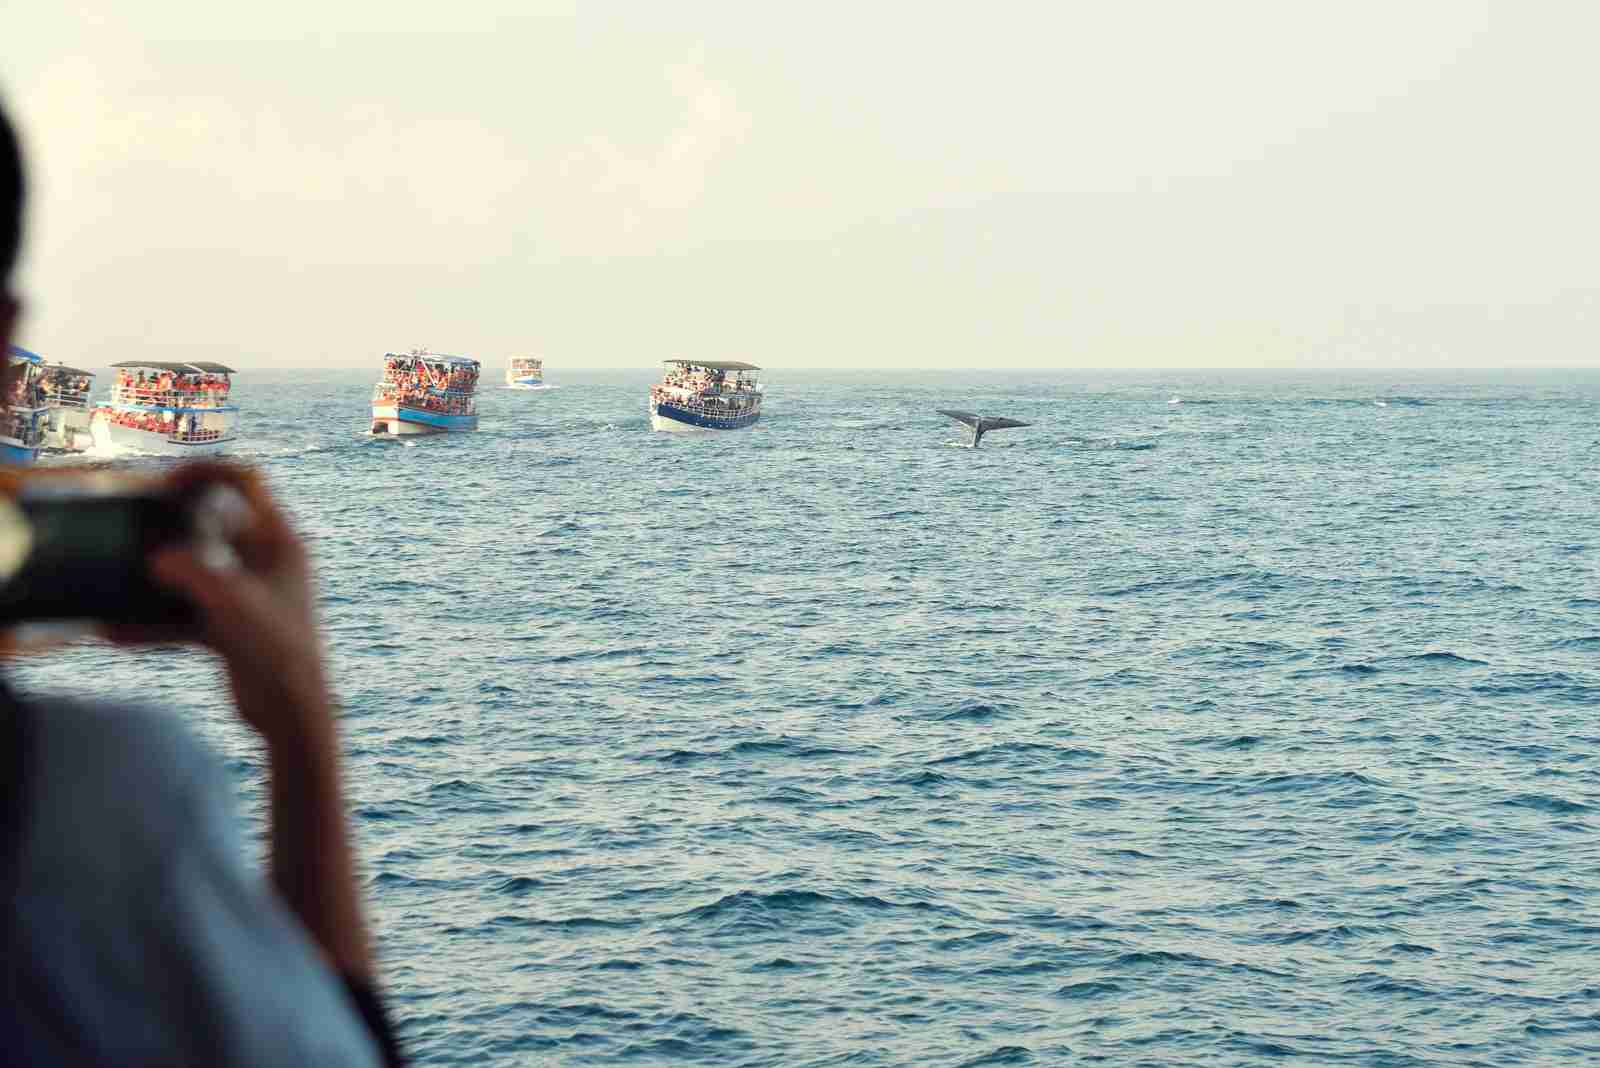 Whale-watching in Sri Lanka. (Photo via Getty Images)